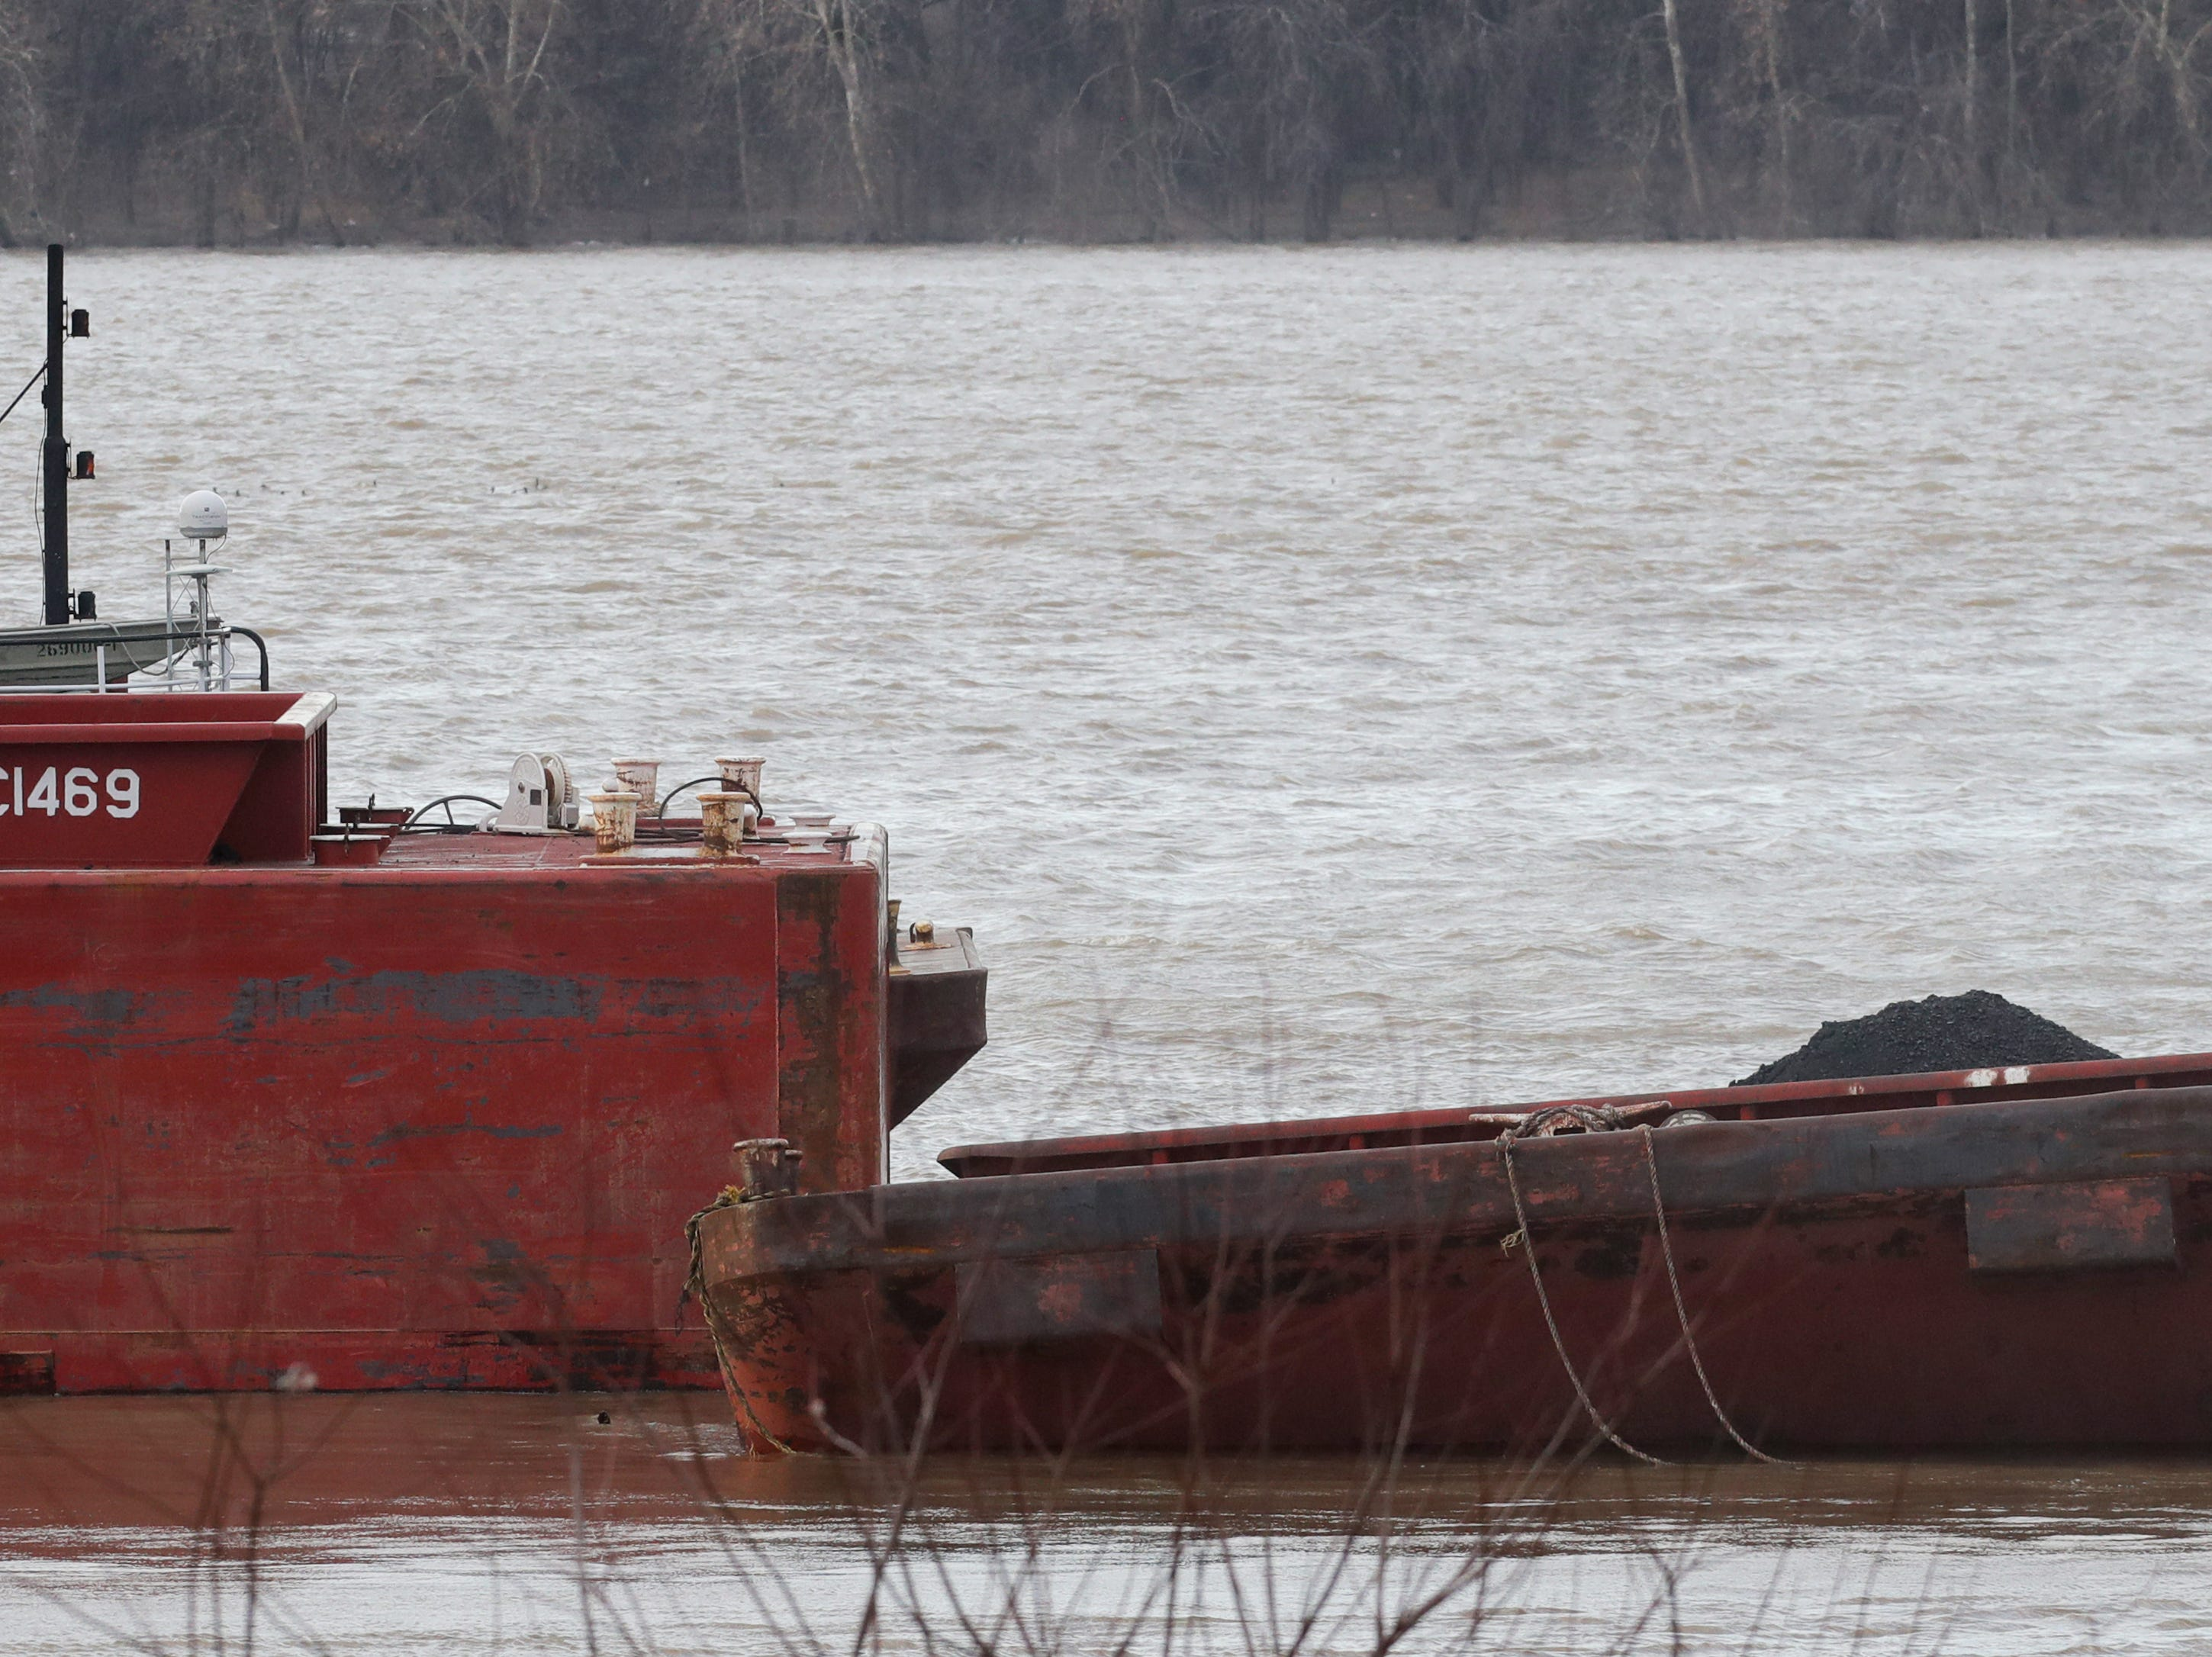 One of the salvage crews arrives at the McAlpine Dam to begin the recovery process on several barges that are stuck on the dam. 